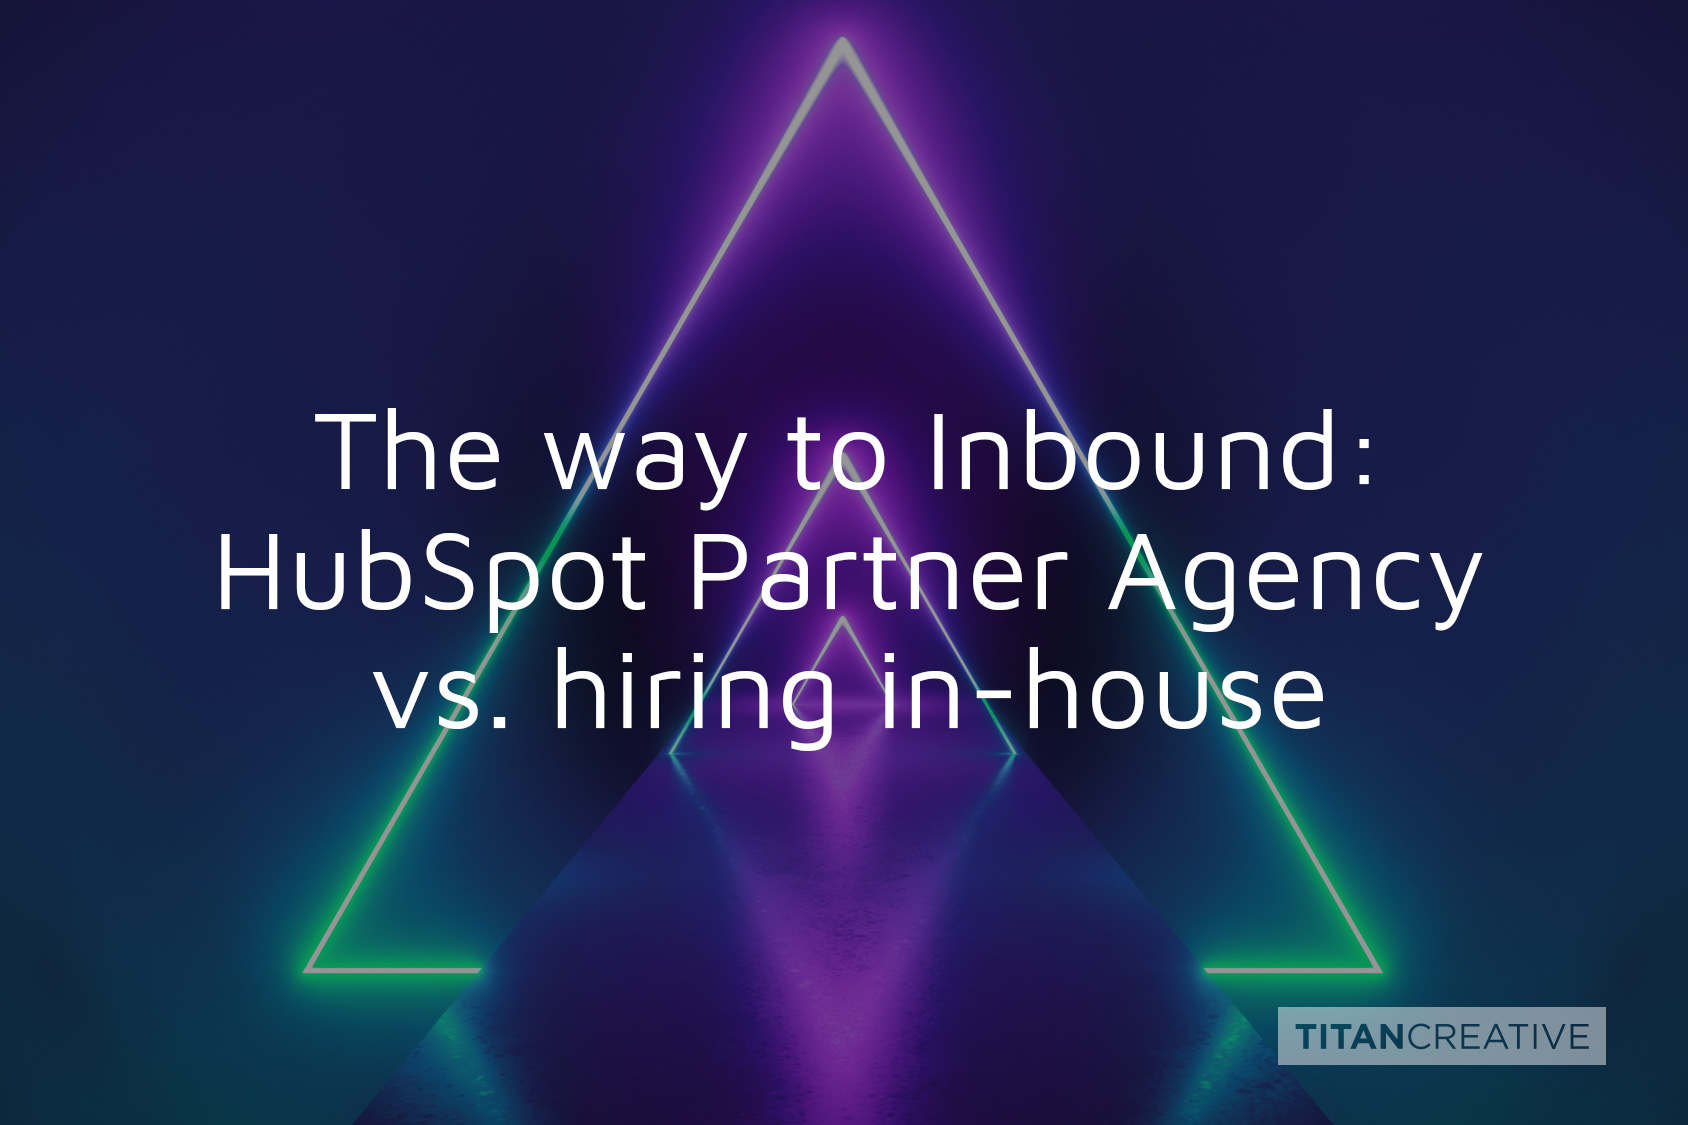 The way to Inbound: Working with a HubSpot Partner Agency vs. hiring in-house